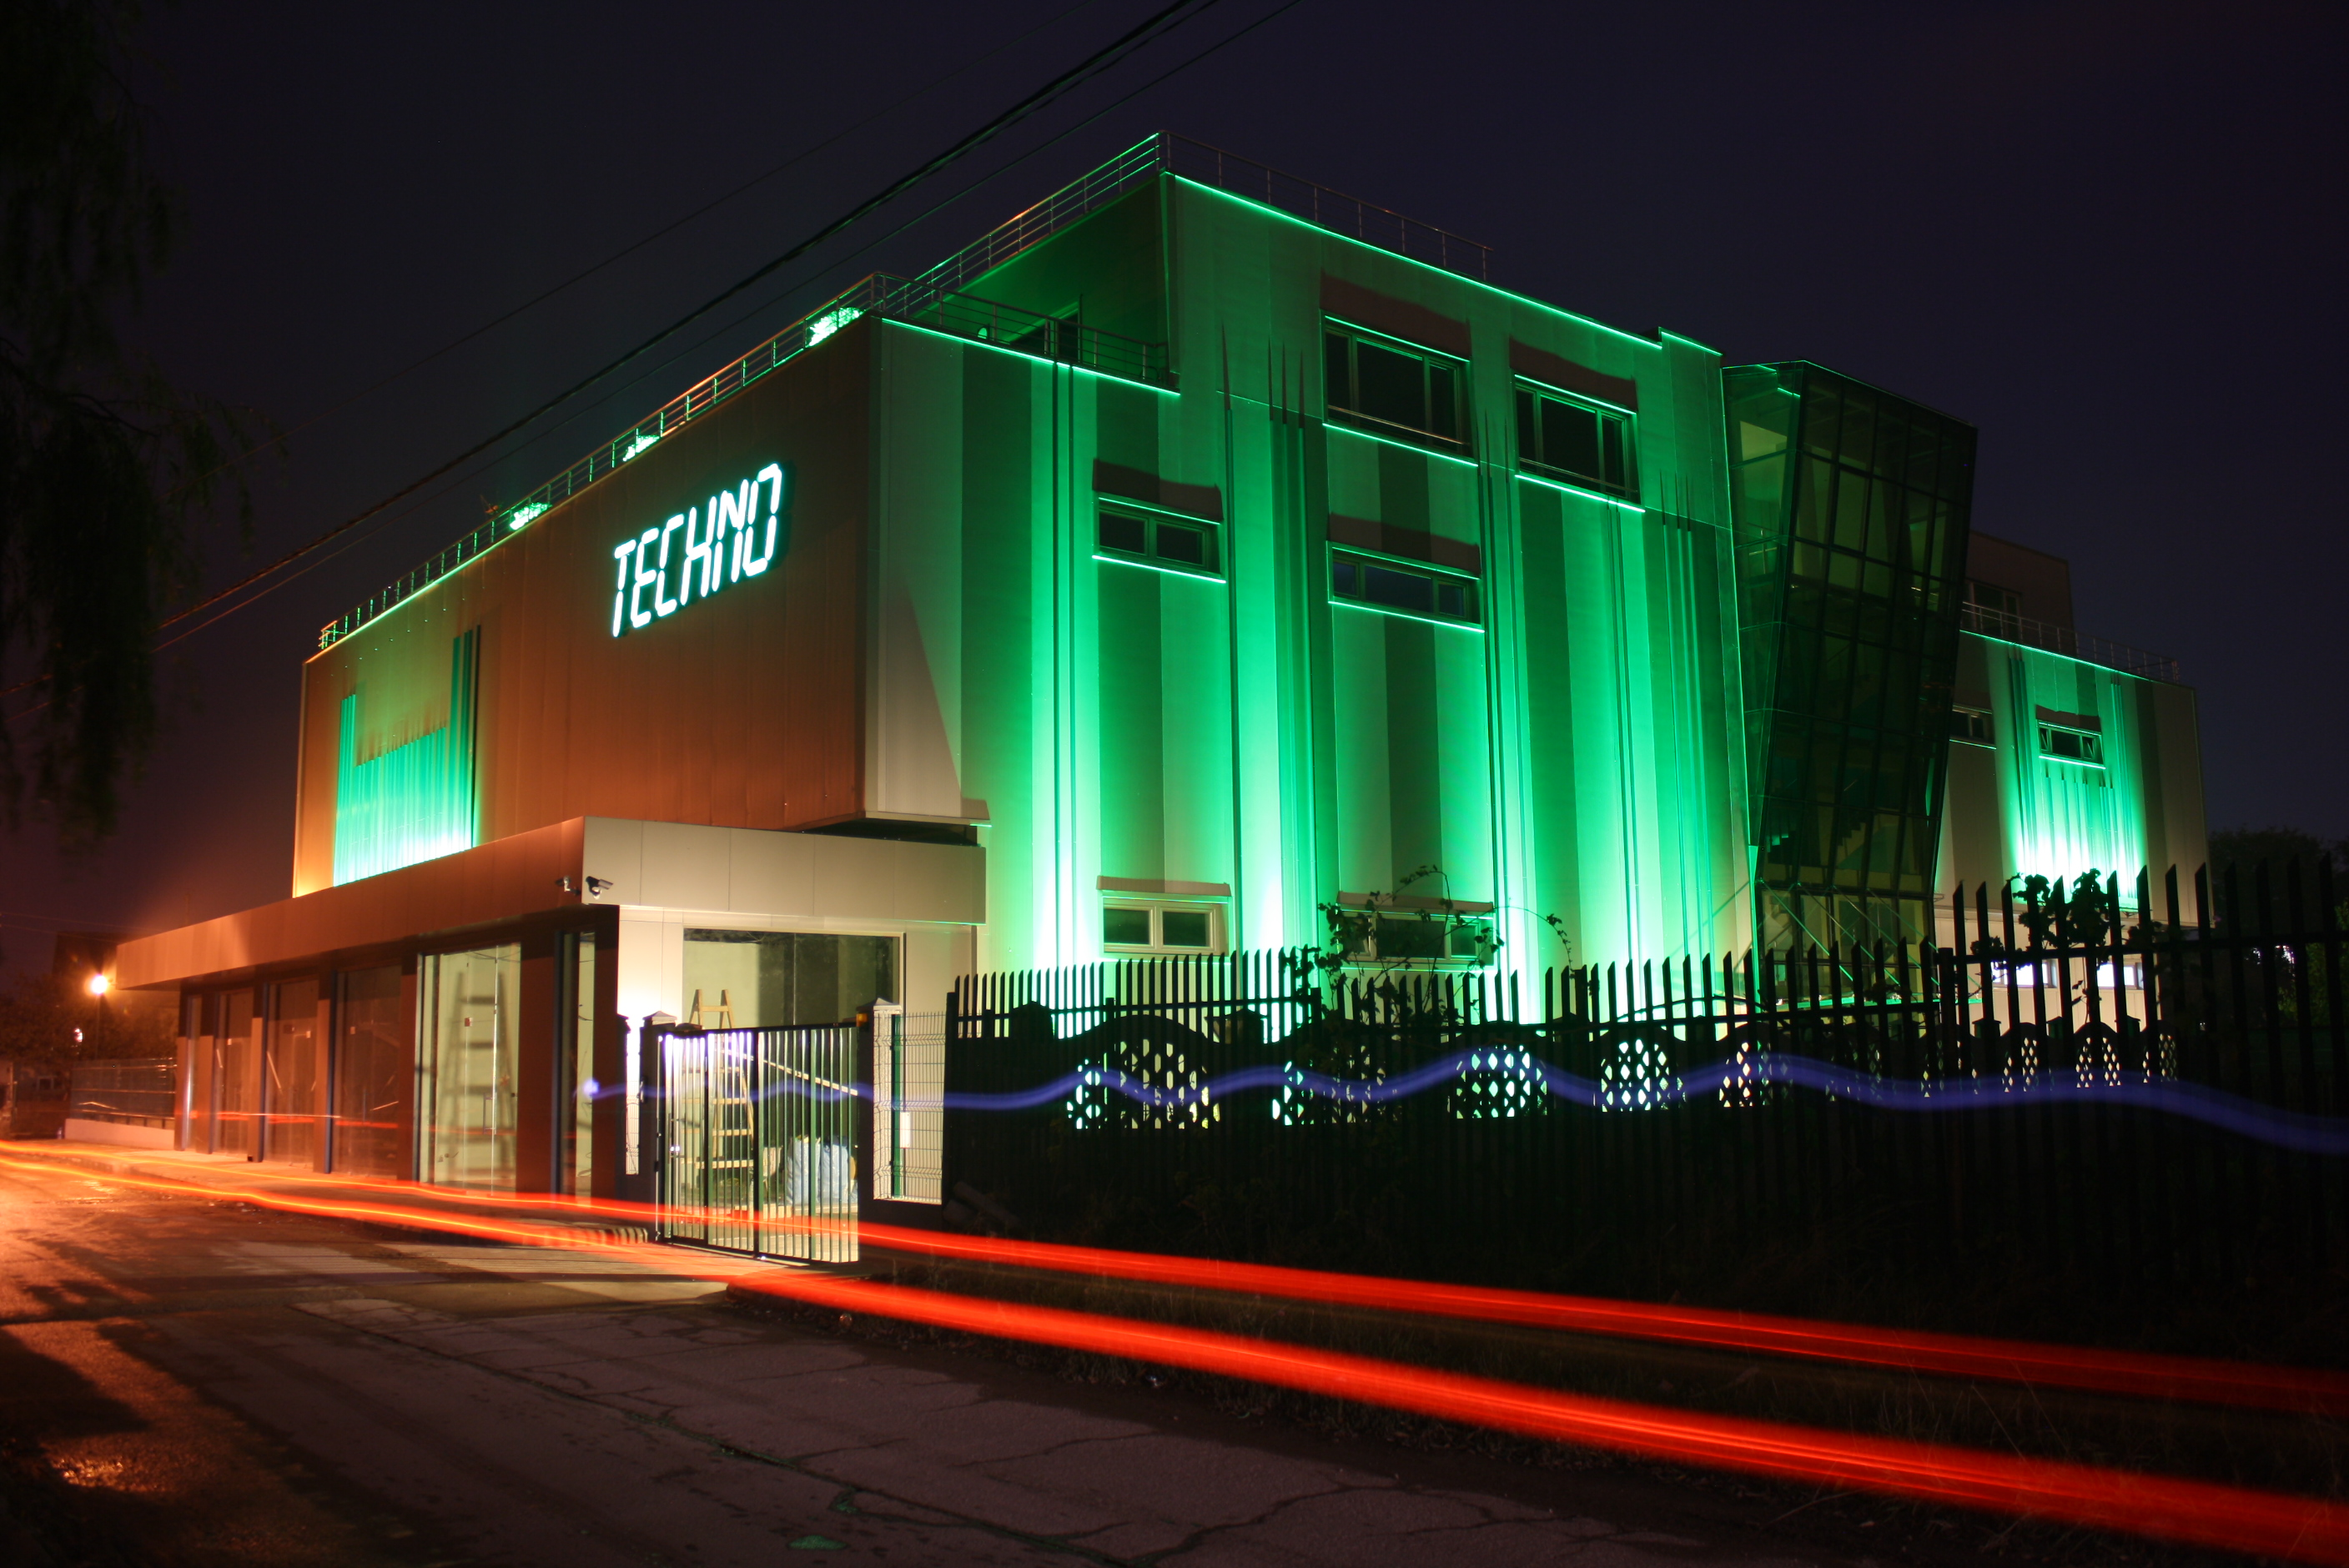 LED Facade green light